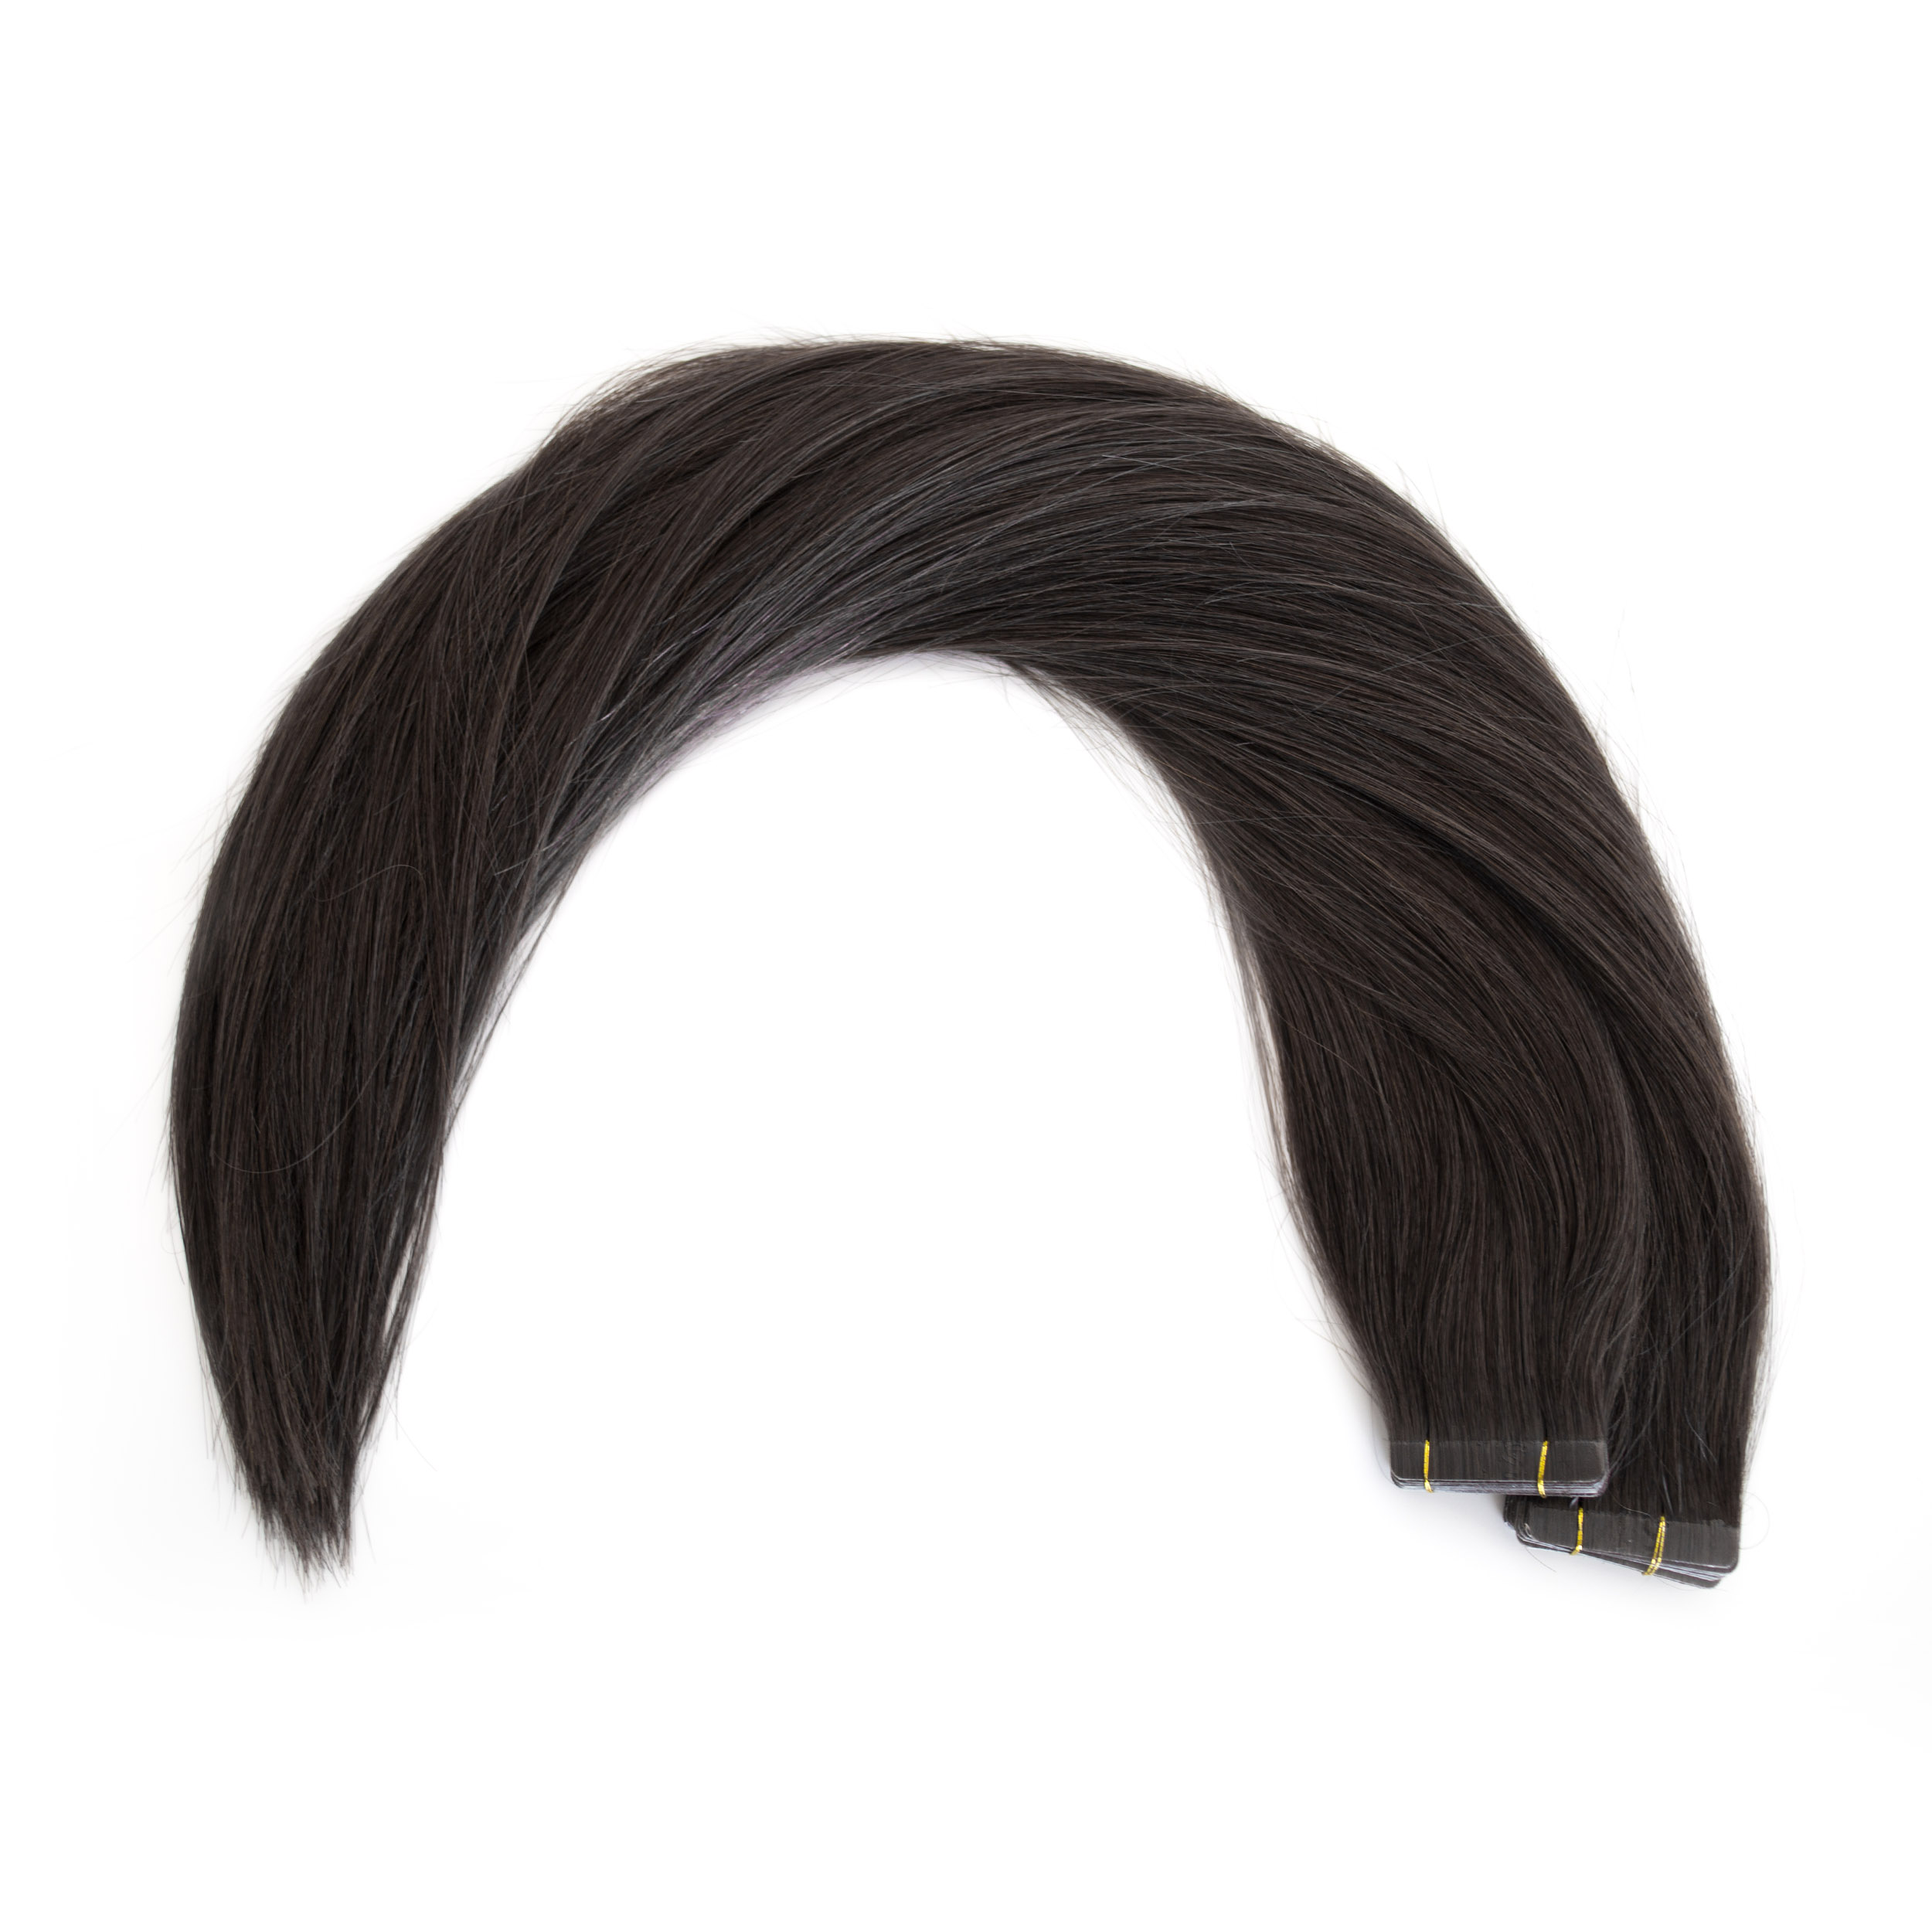 Caviar Natural Wave Ultimate 21.5 Inches